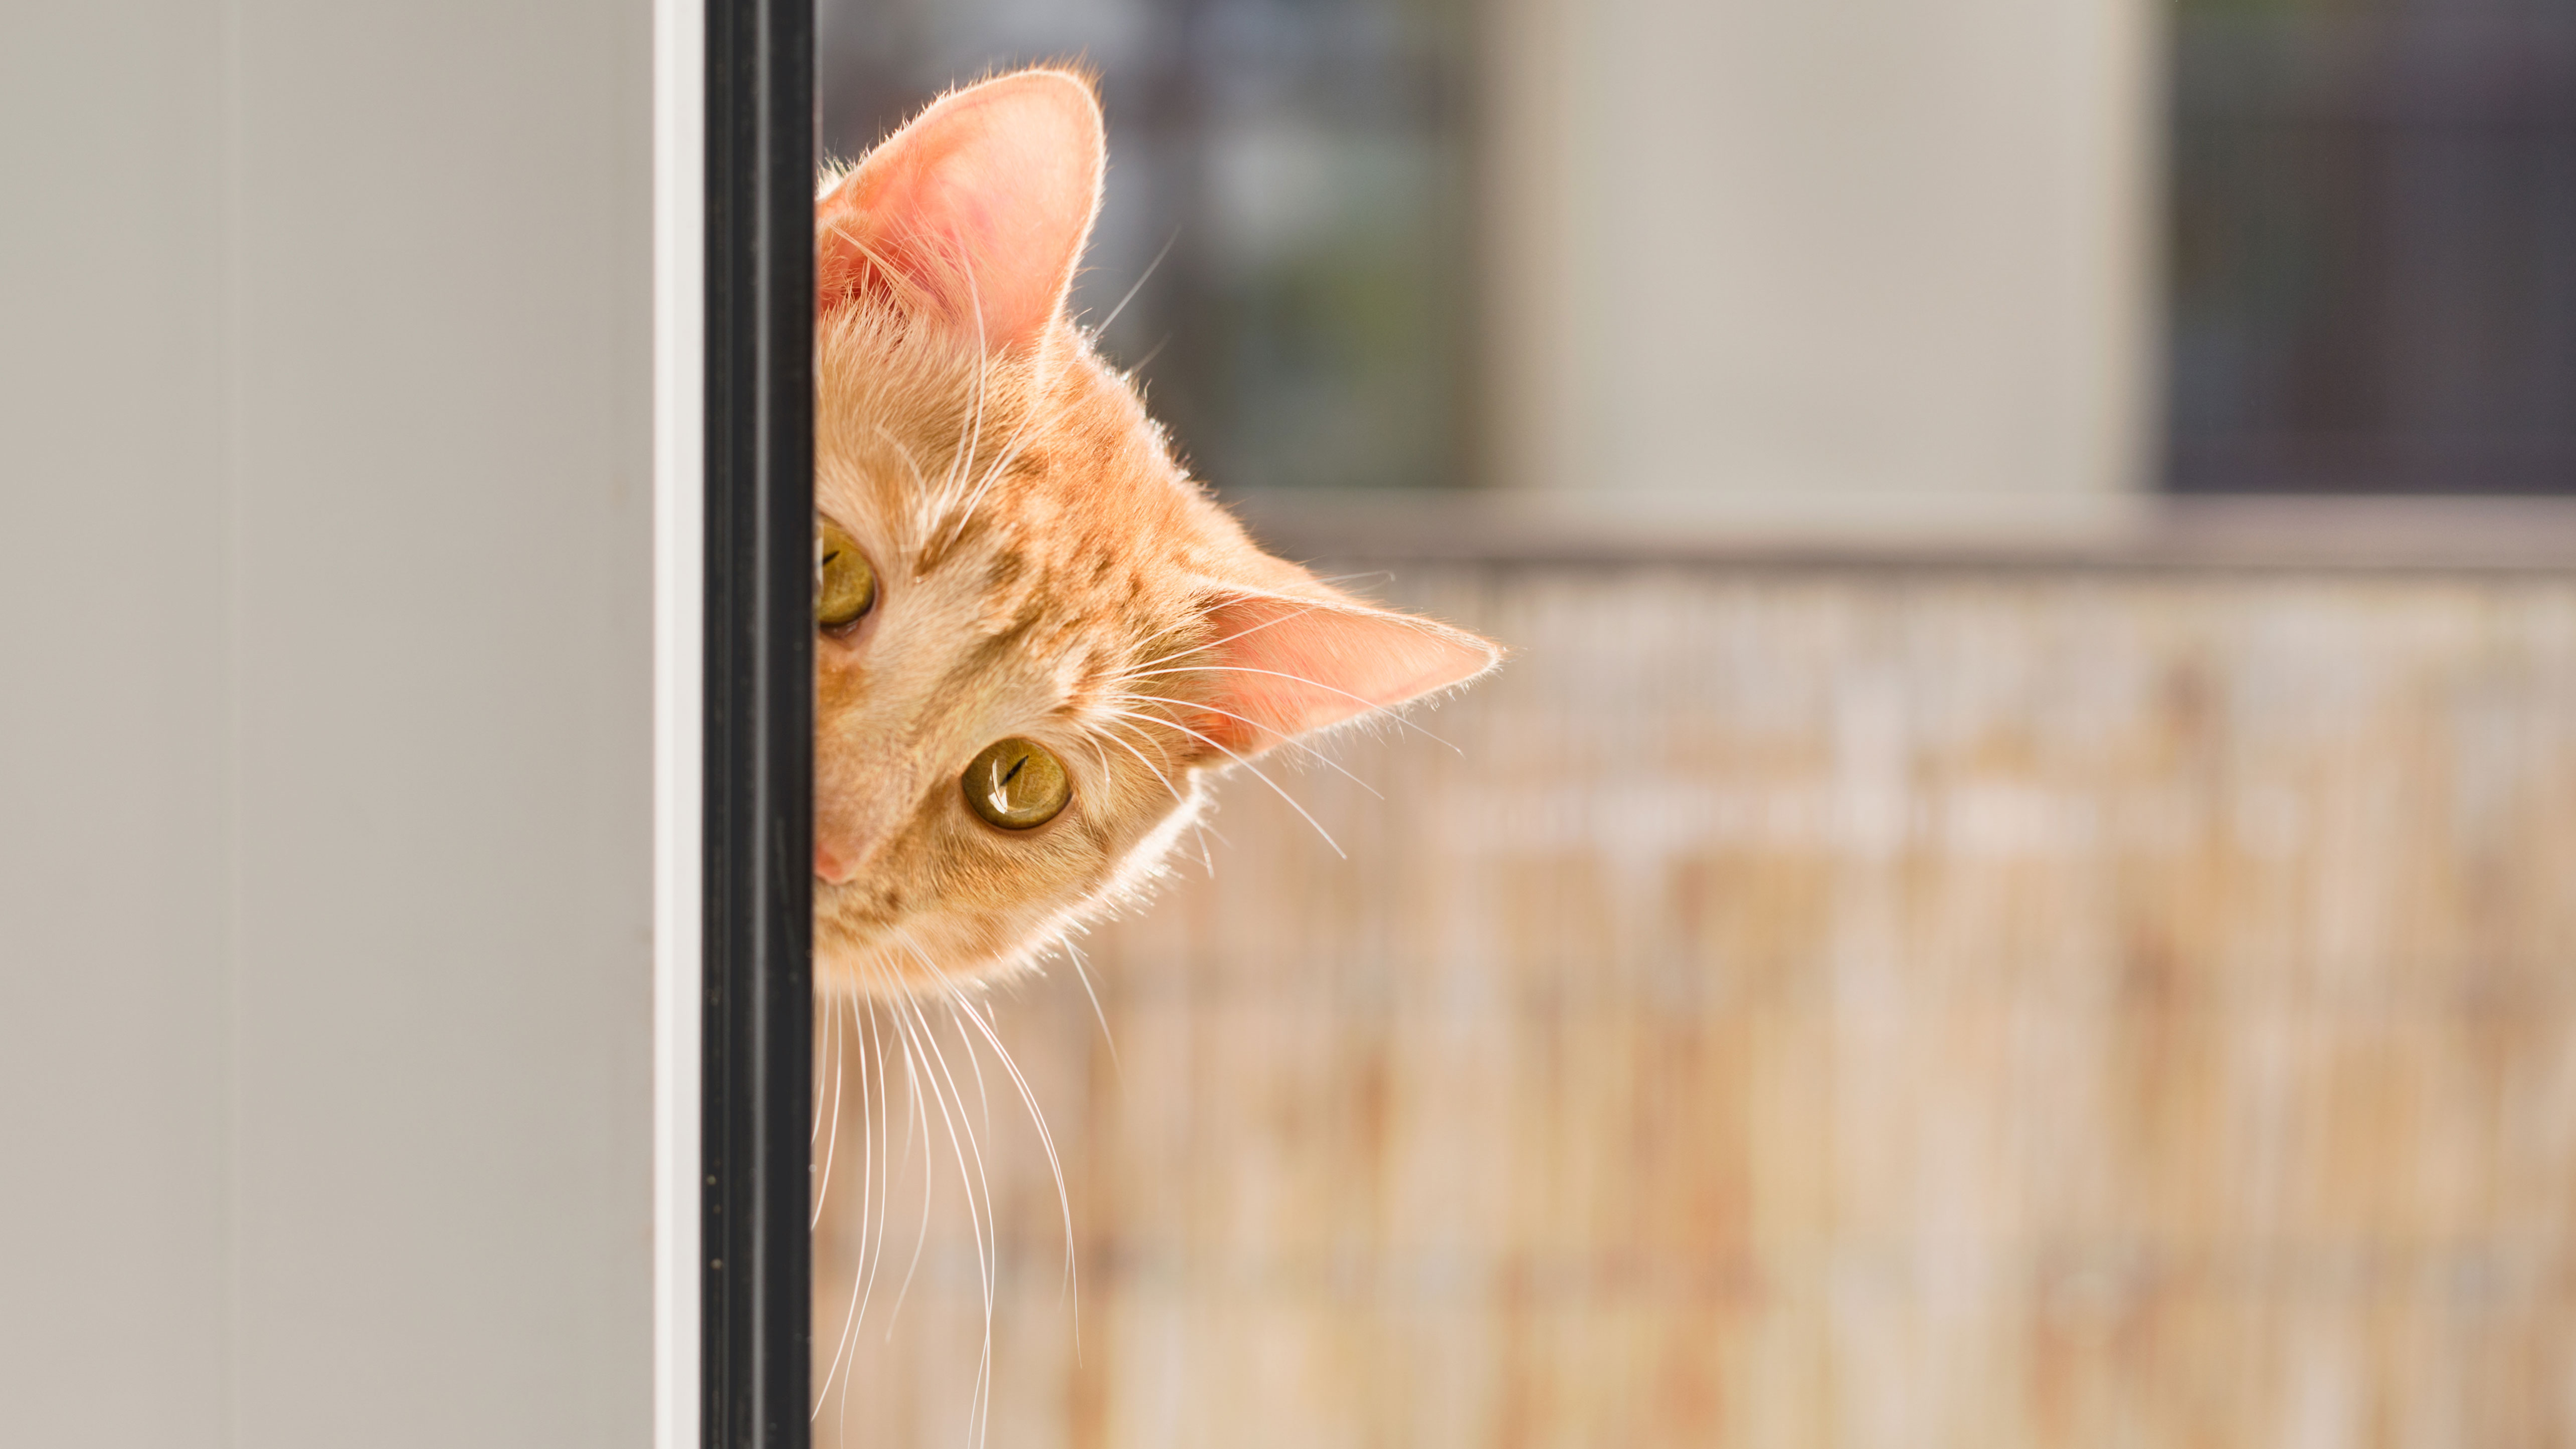 When the CIA Learned Cats Make Bad Spies - HISTORY